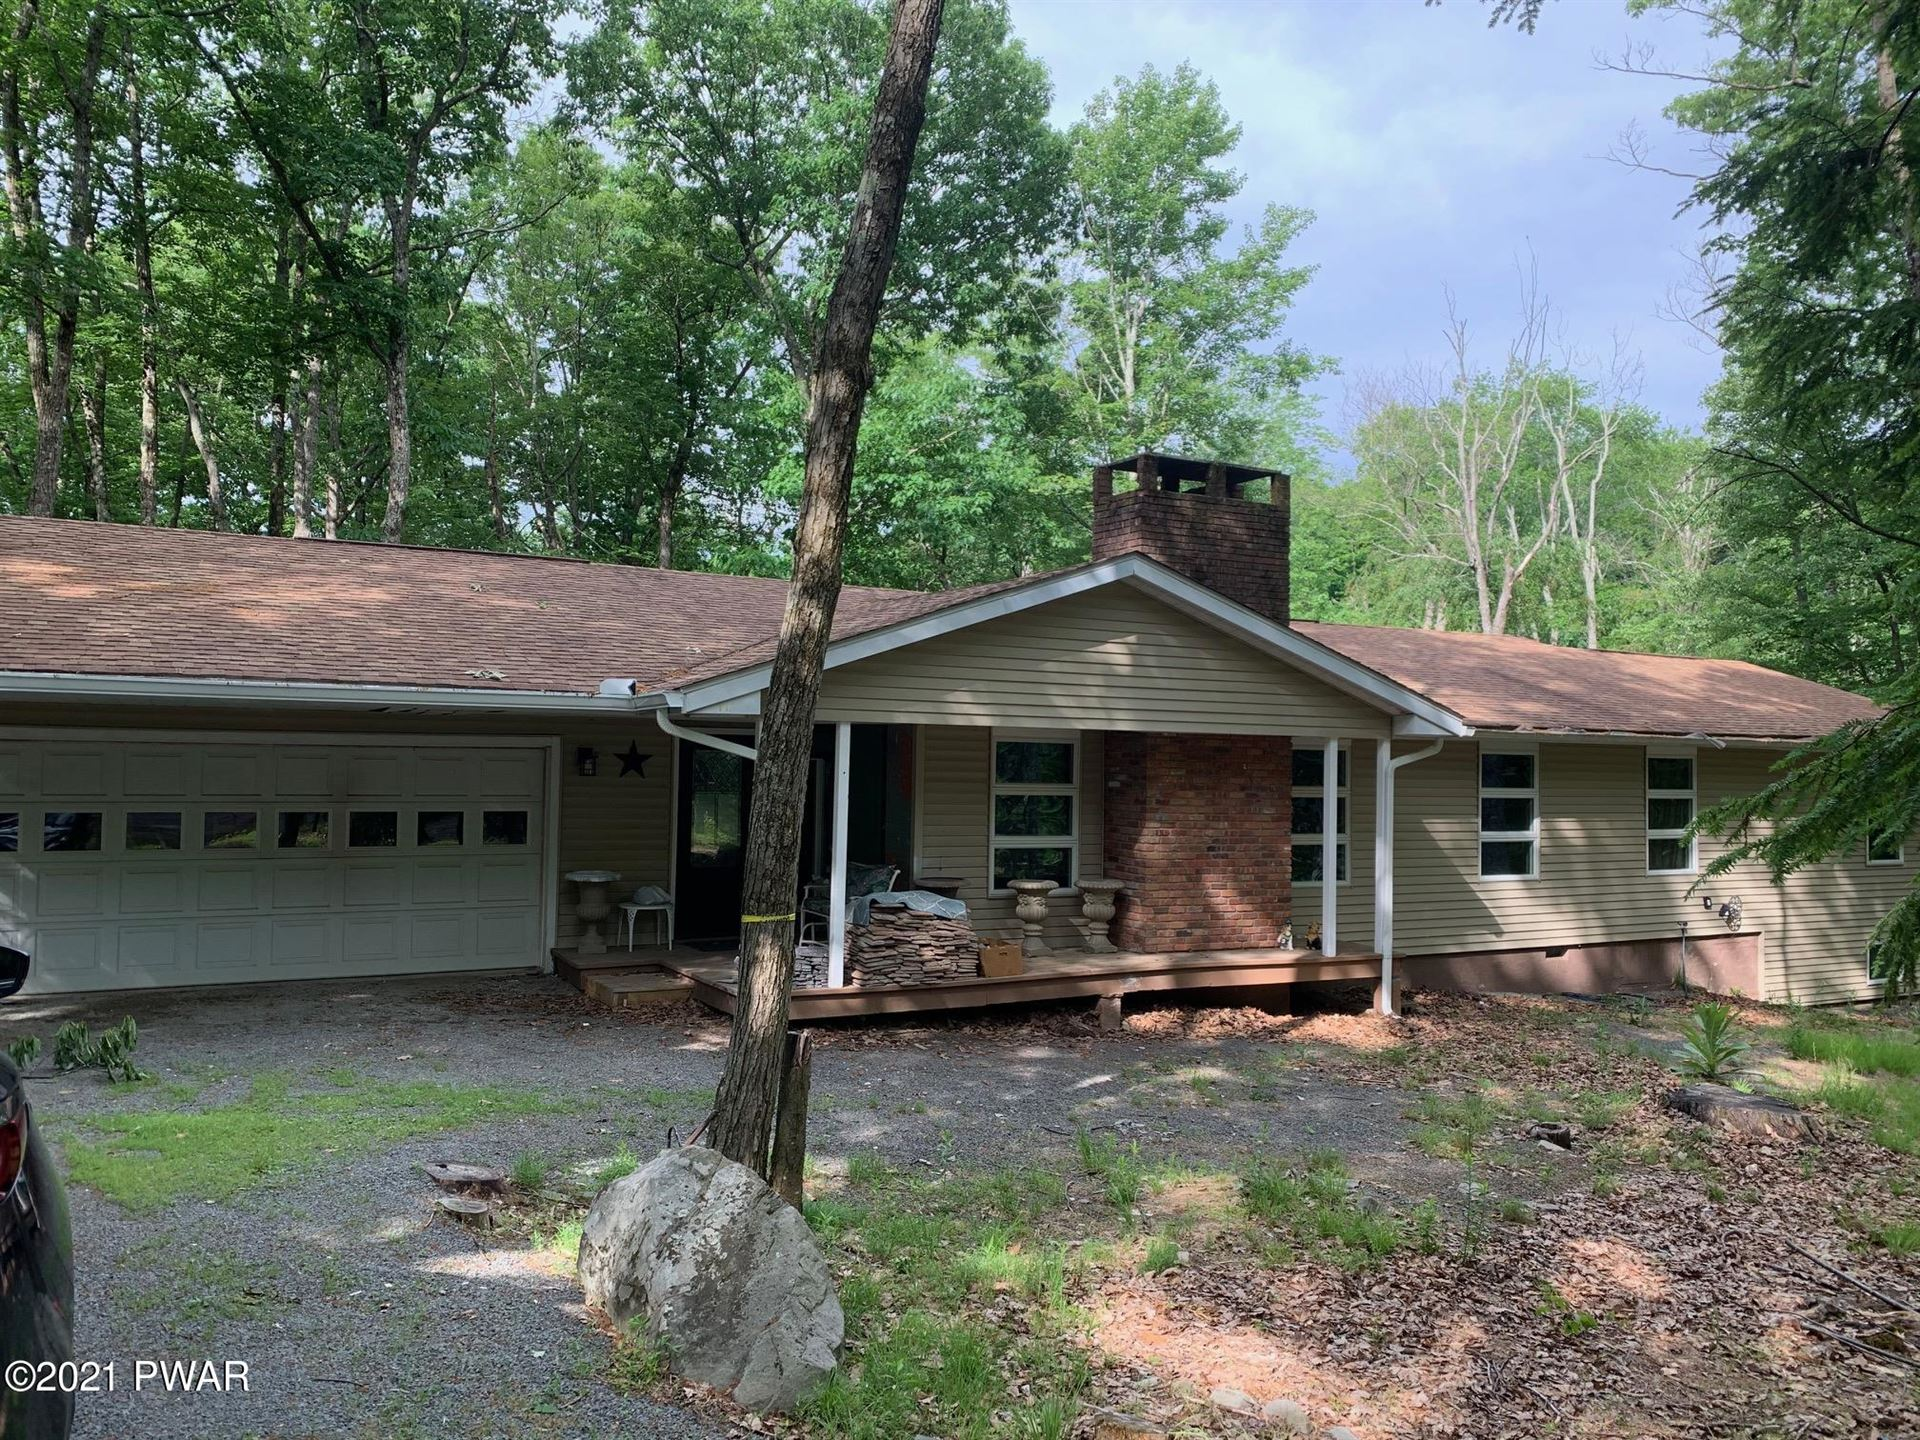 Photo of 803 Burning Tree Ct, Lords Valley, PA 18428 (MLS # 21-2167)